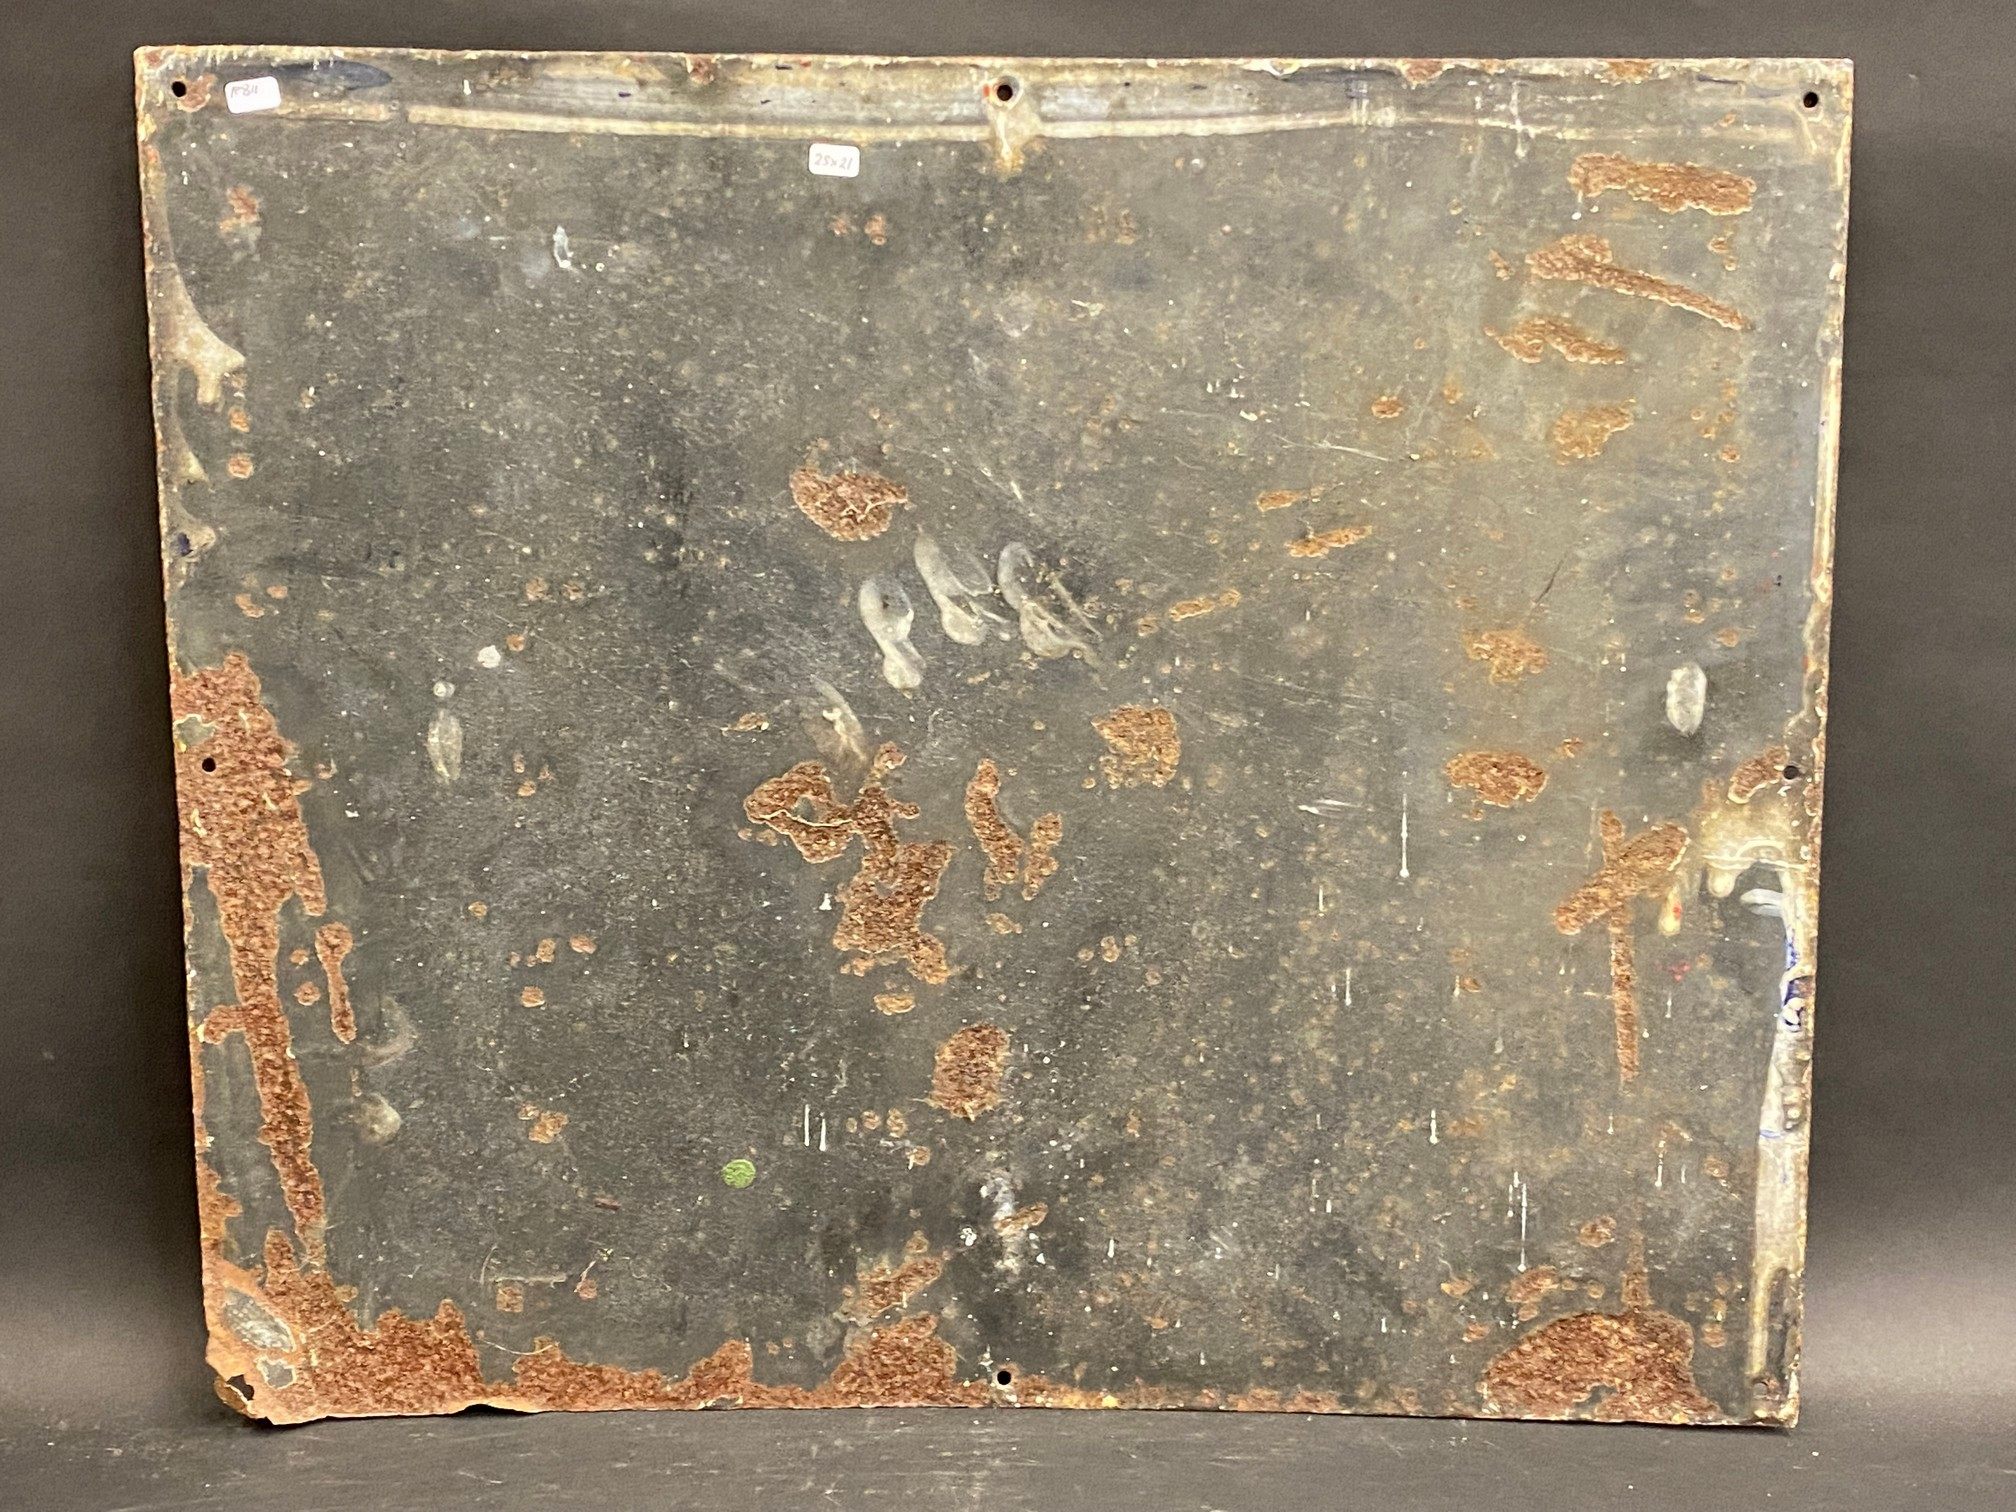 """A Price's Motorine rectangular enamel sign by Bruton of Palmers Green, 25 x 21"""". - Image 4 of 4"""